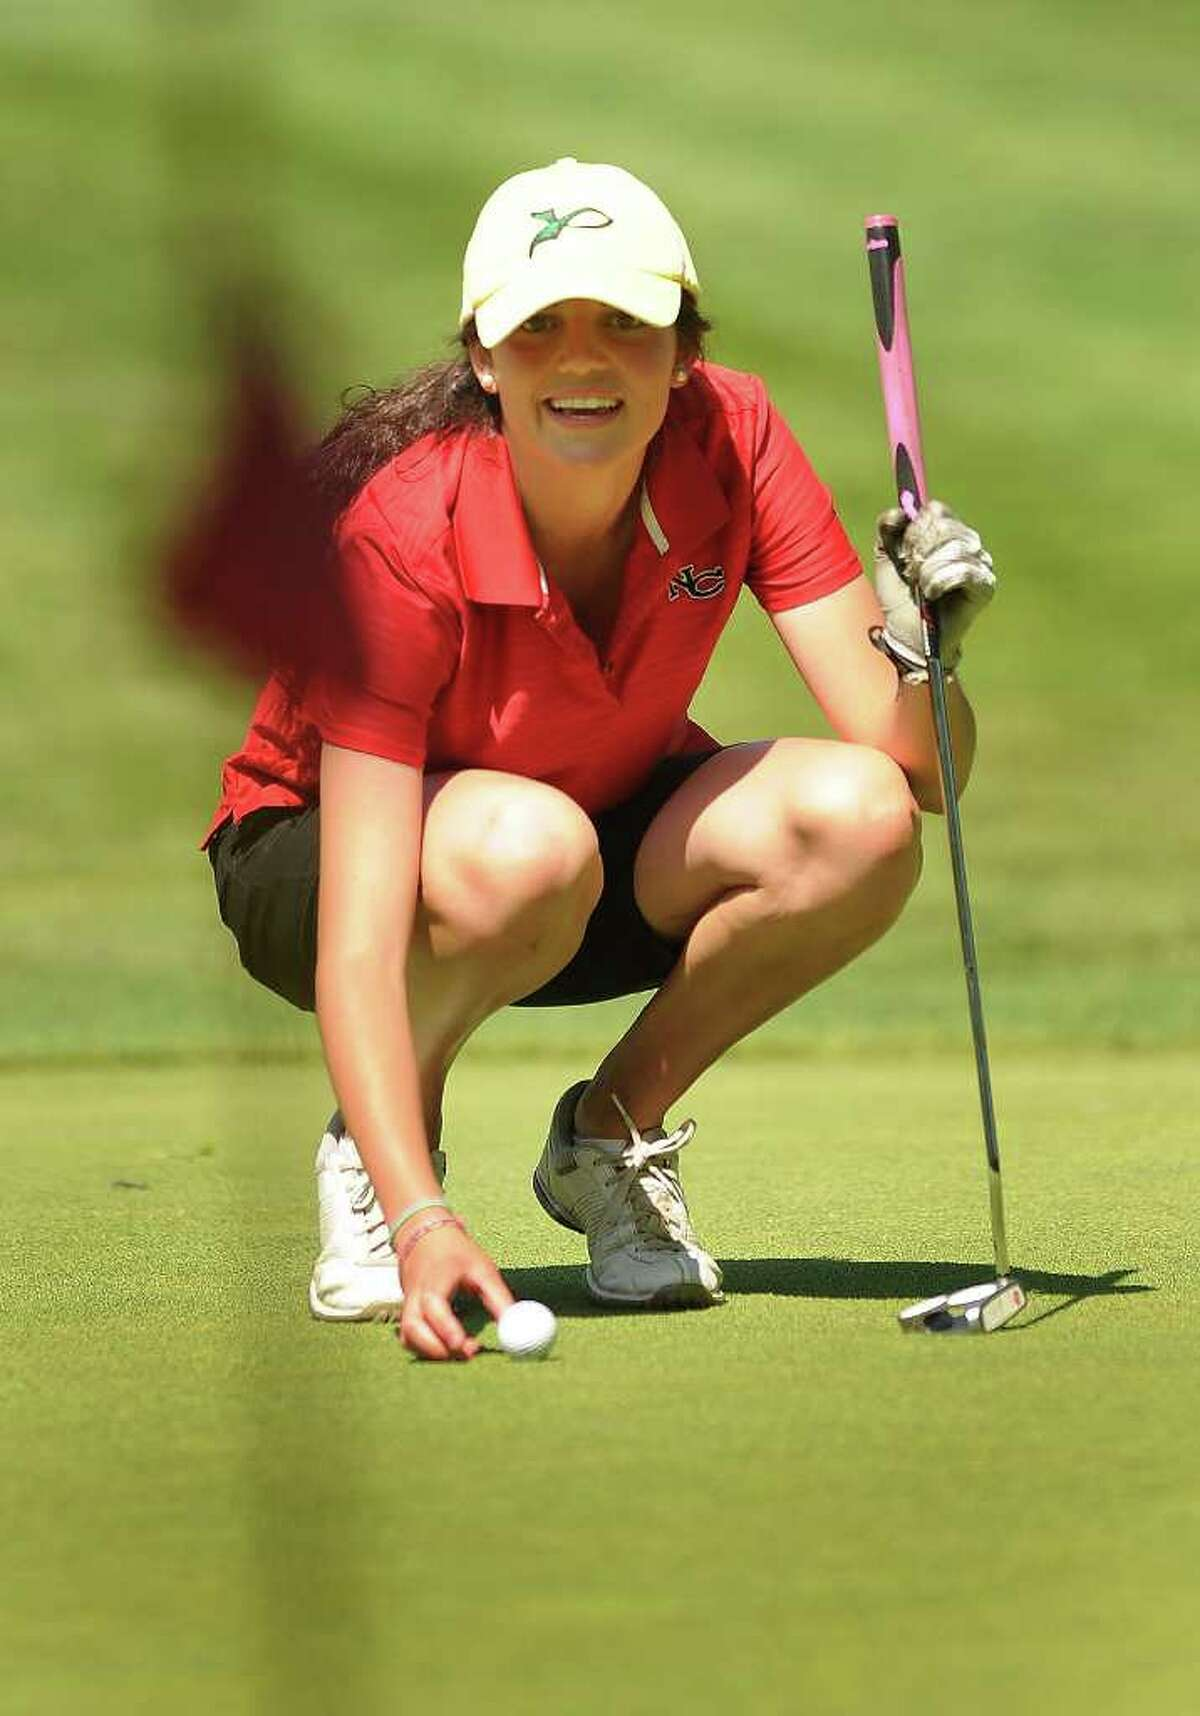 New Canaan's Krissy Parrett lines up a putt on the 10th green at the 2011 Girls Golf State Tournament at Orange Hills Country Club in Orange on Tuesday, June 7, 2011.